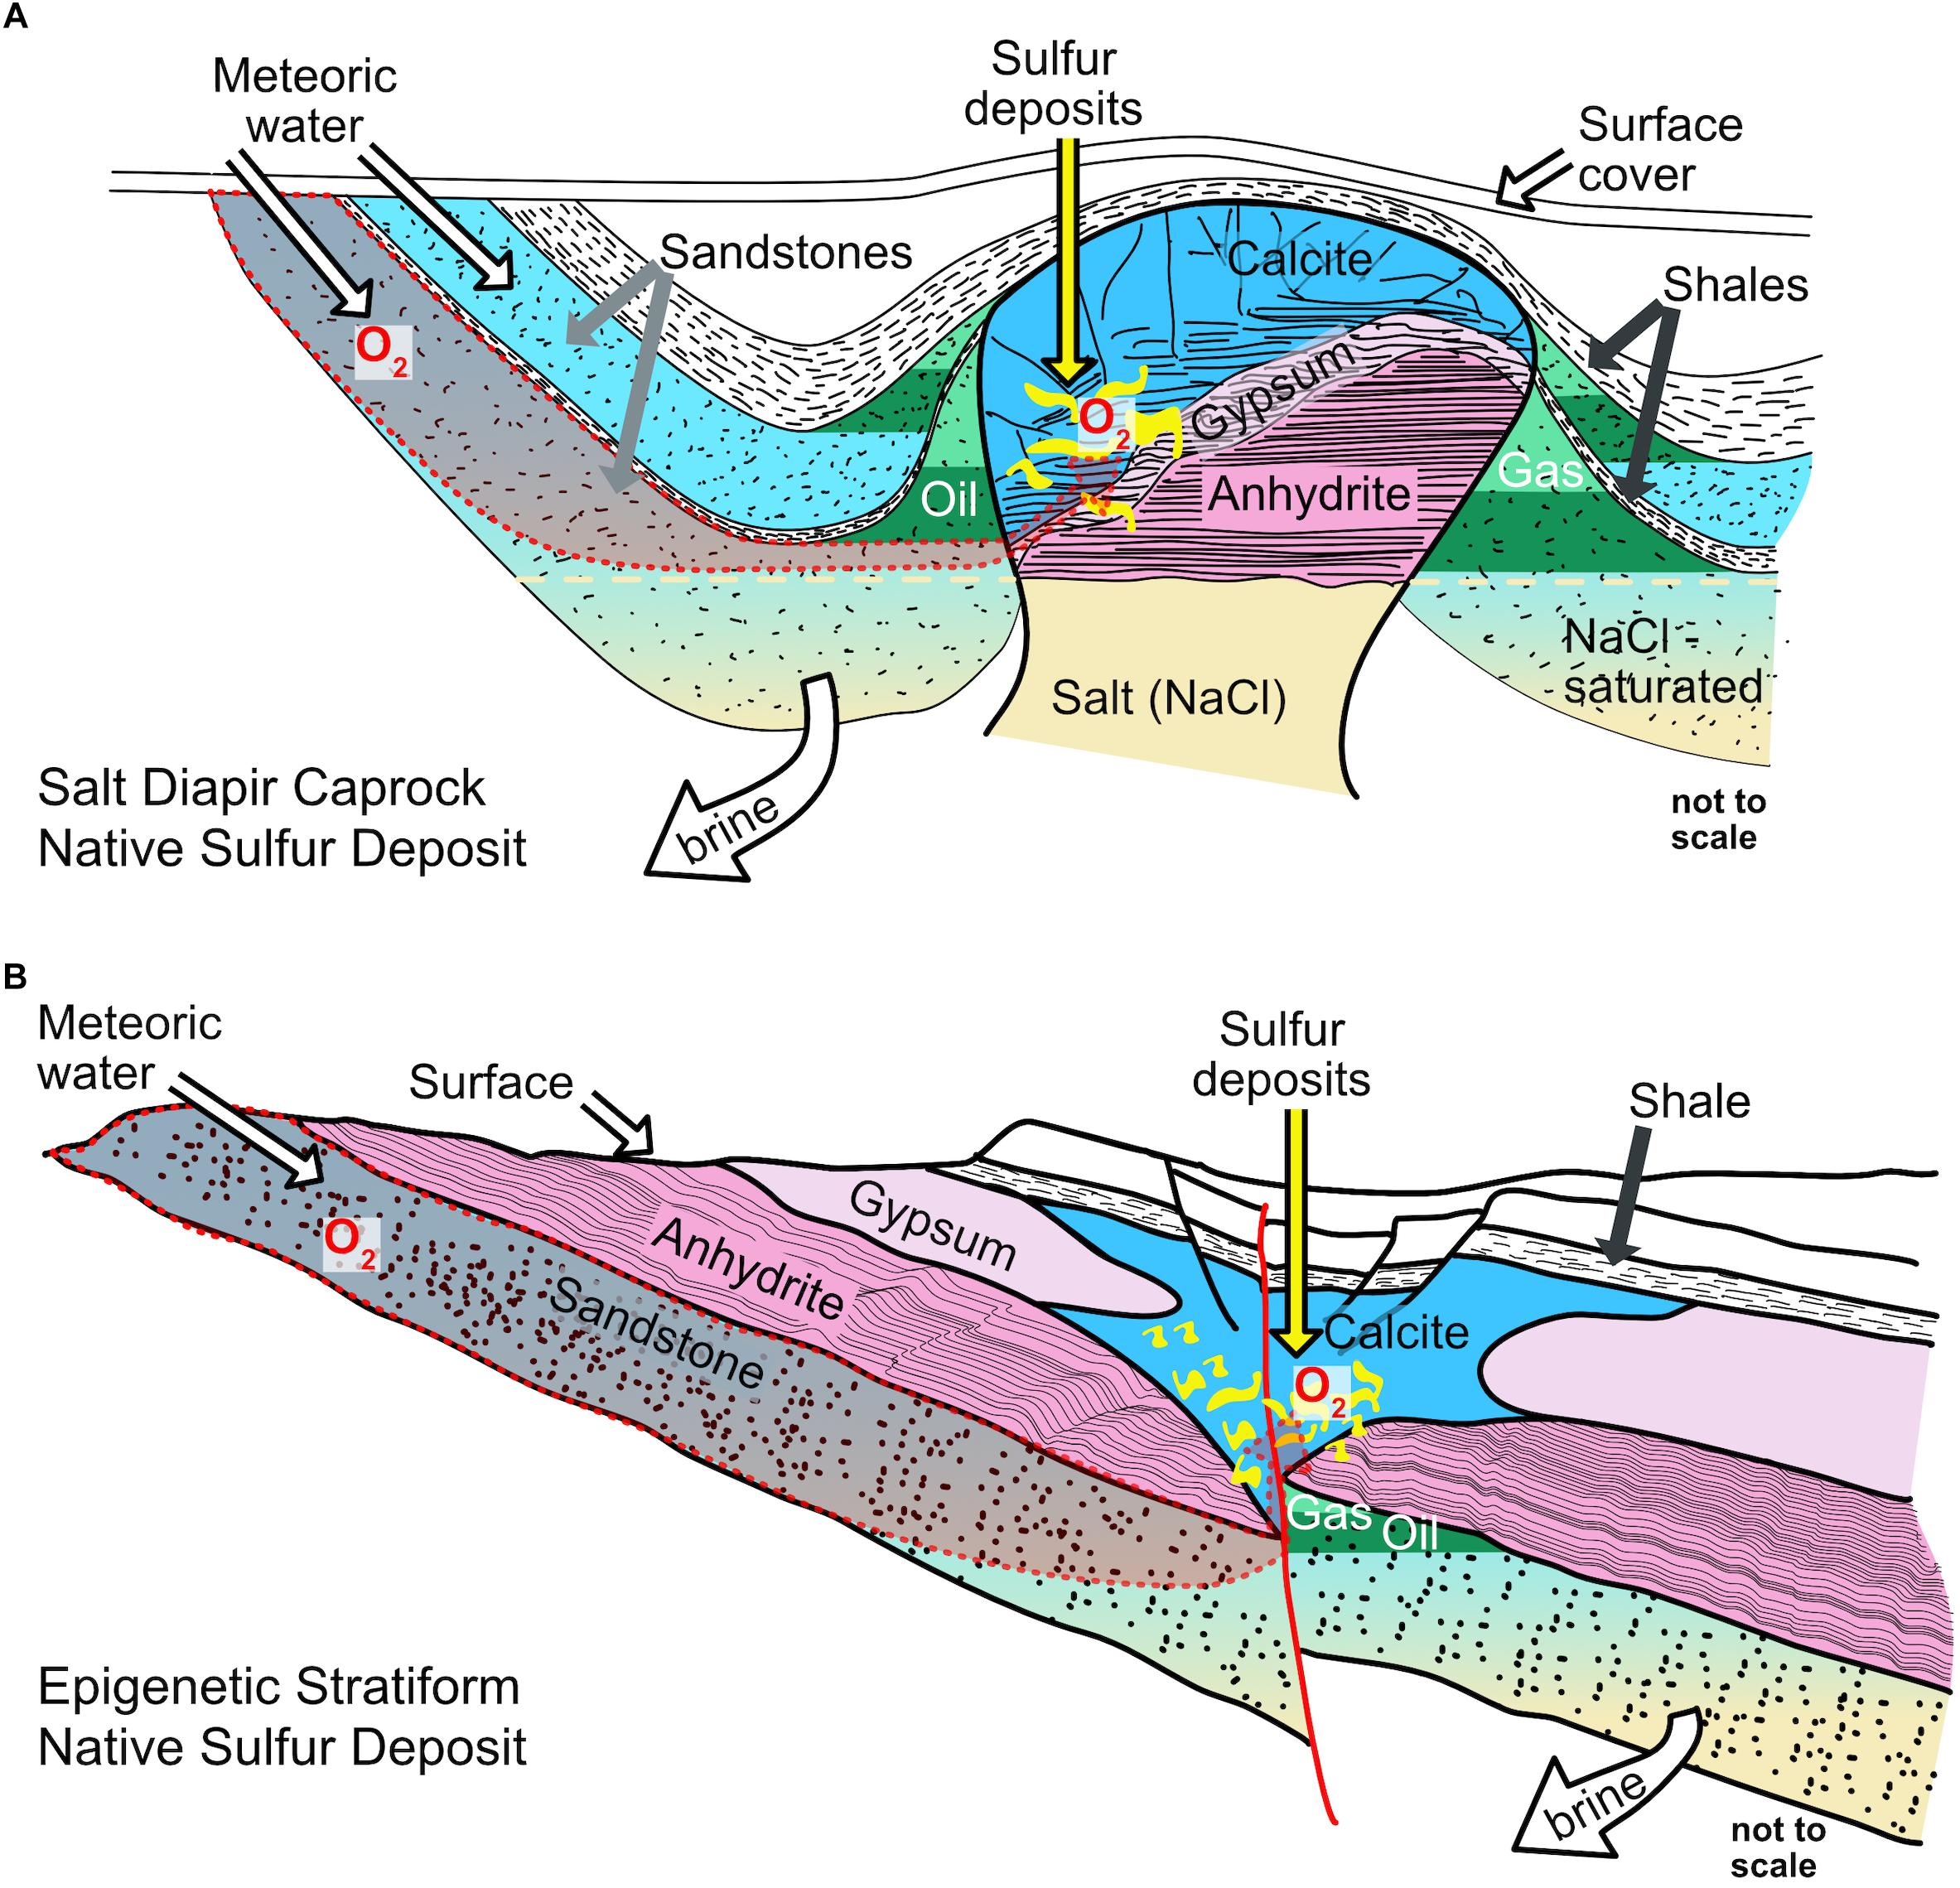 Frontiers | Formation of Large Native Sulfur Deposits Does Not